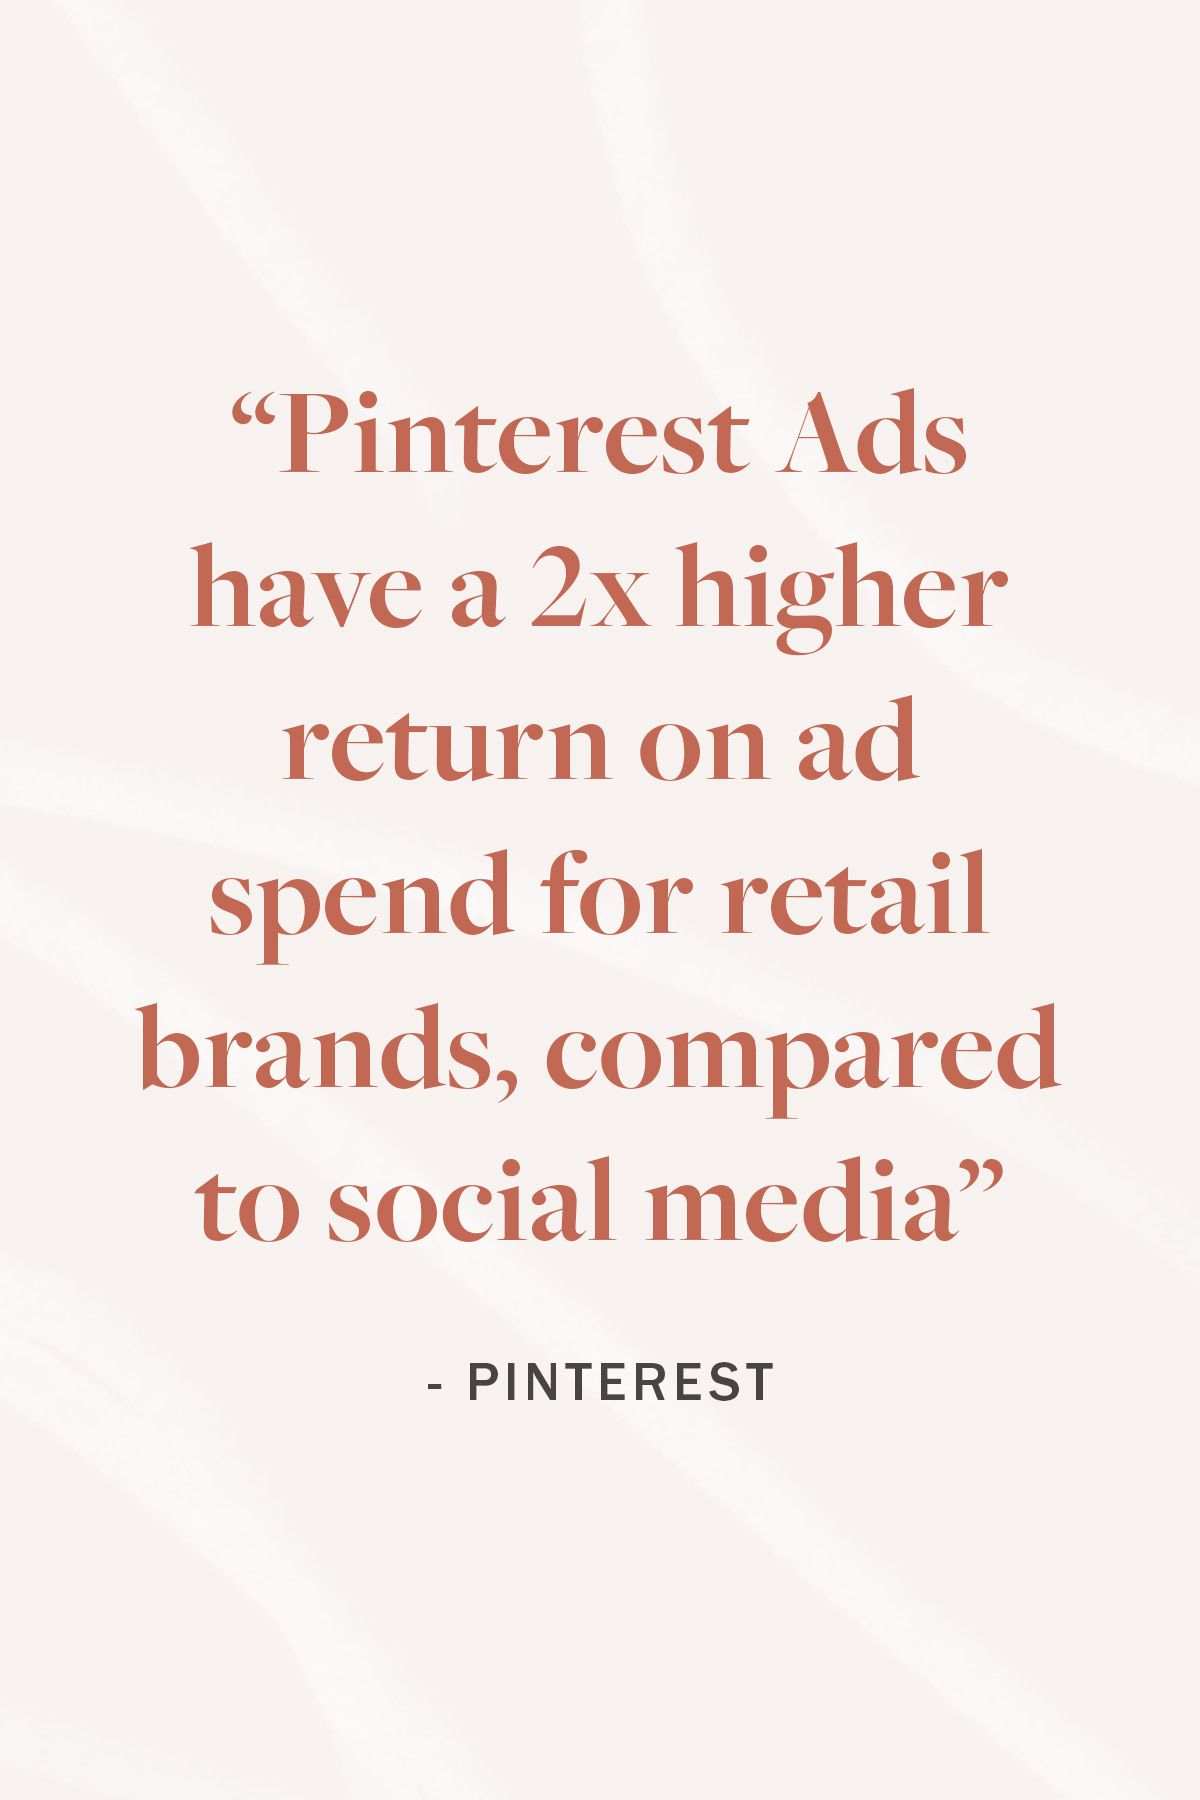 PLANOLY-Blog Post-Getting Started with Pinterest Ads-Image 2